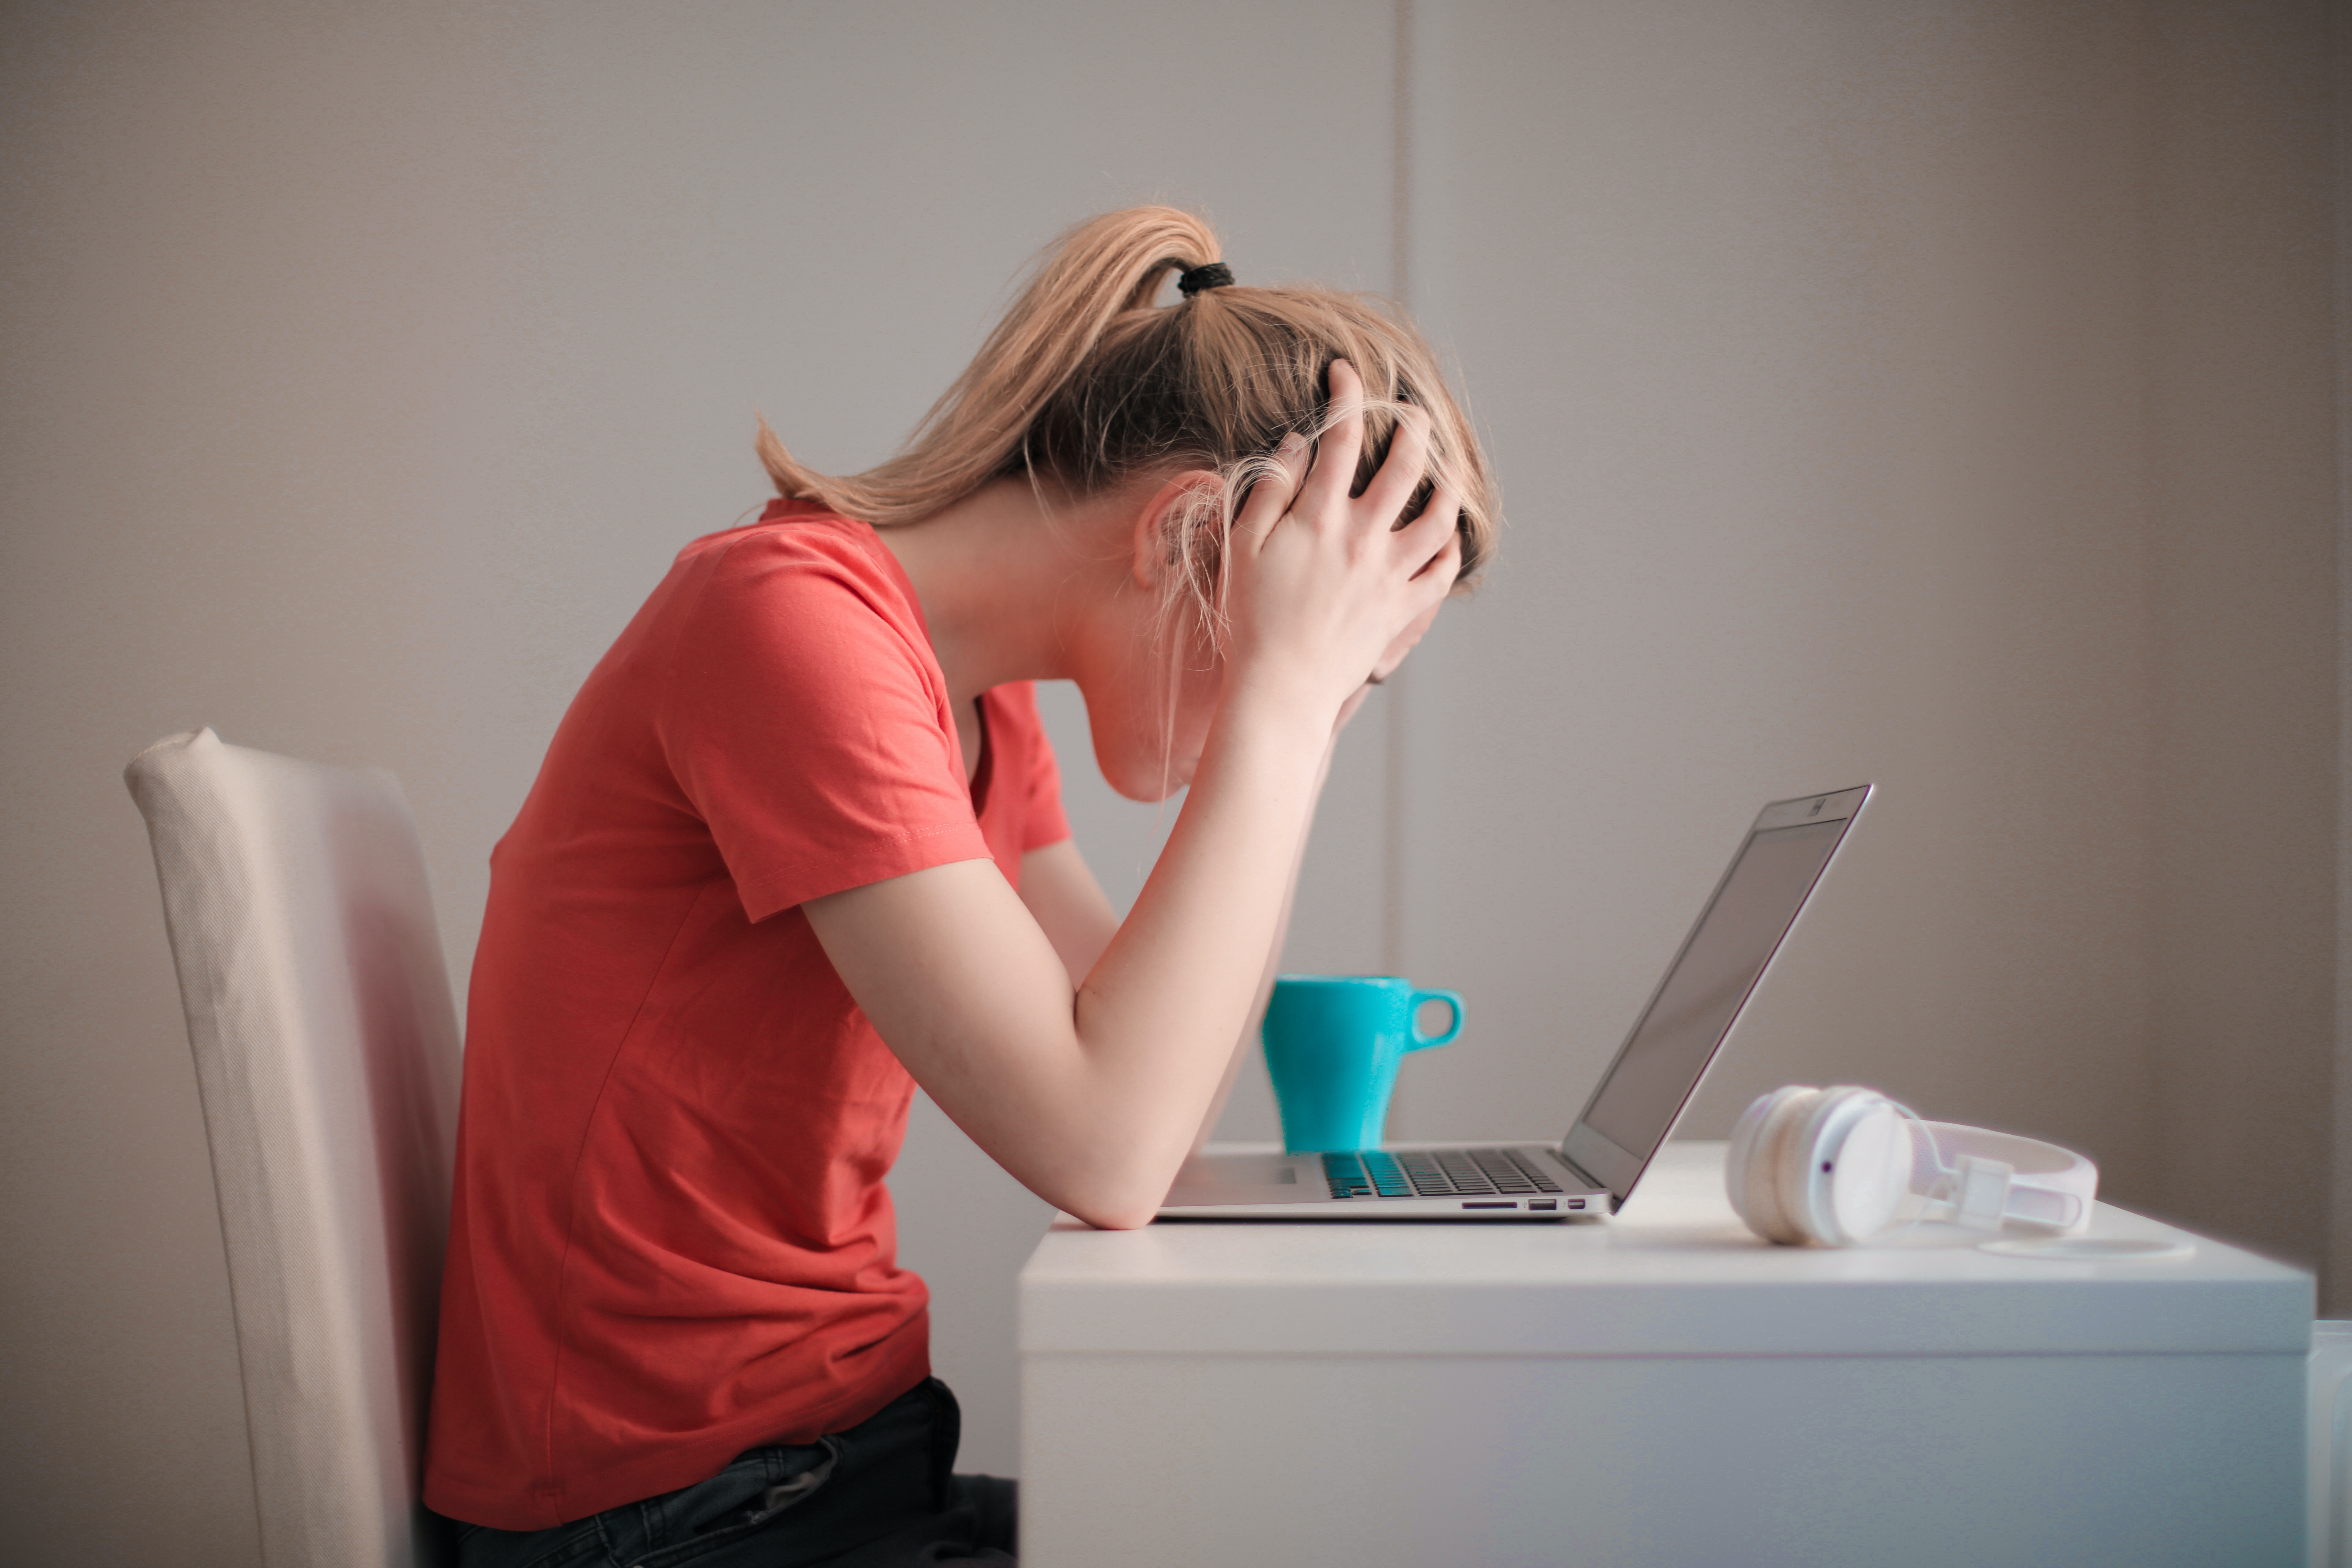 Woman in red t-shirt looking at her laptop, stressed.